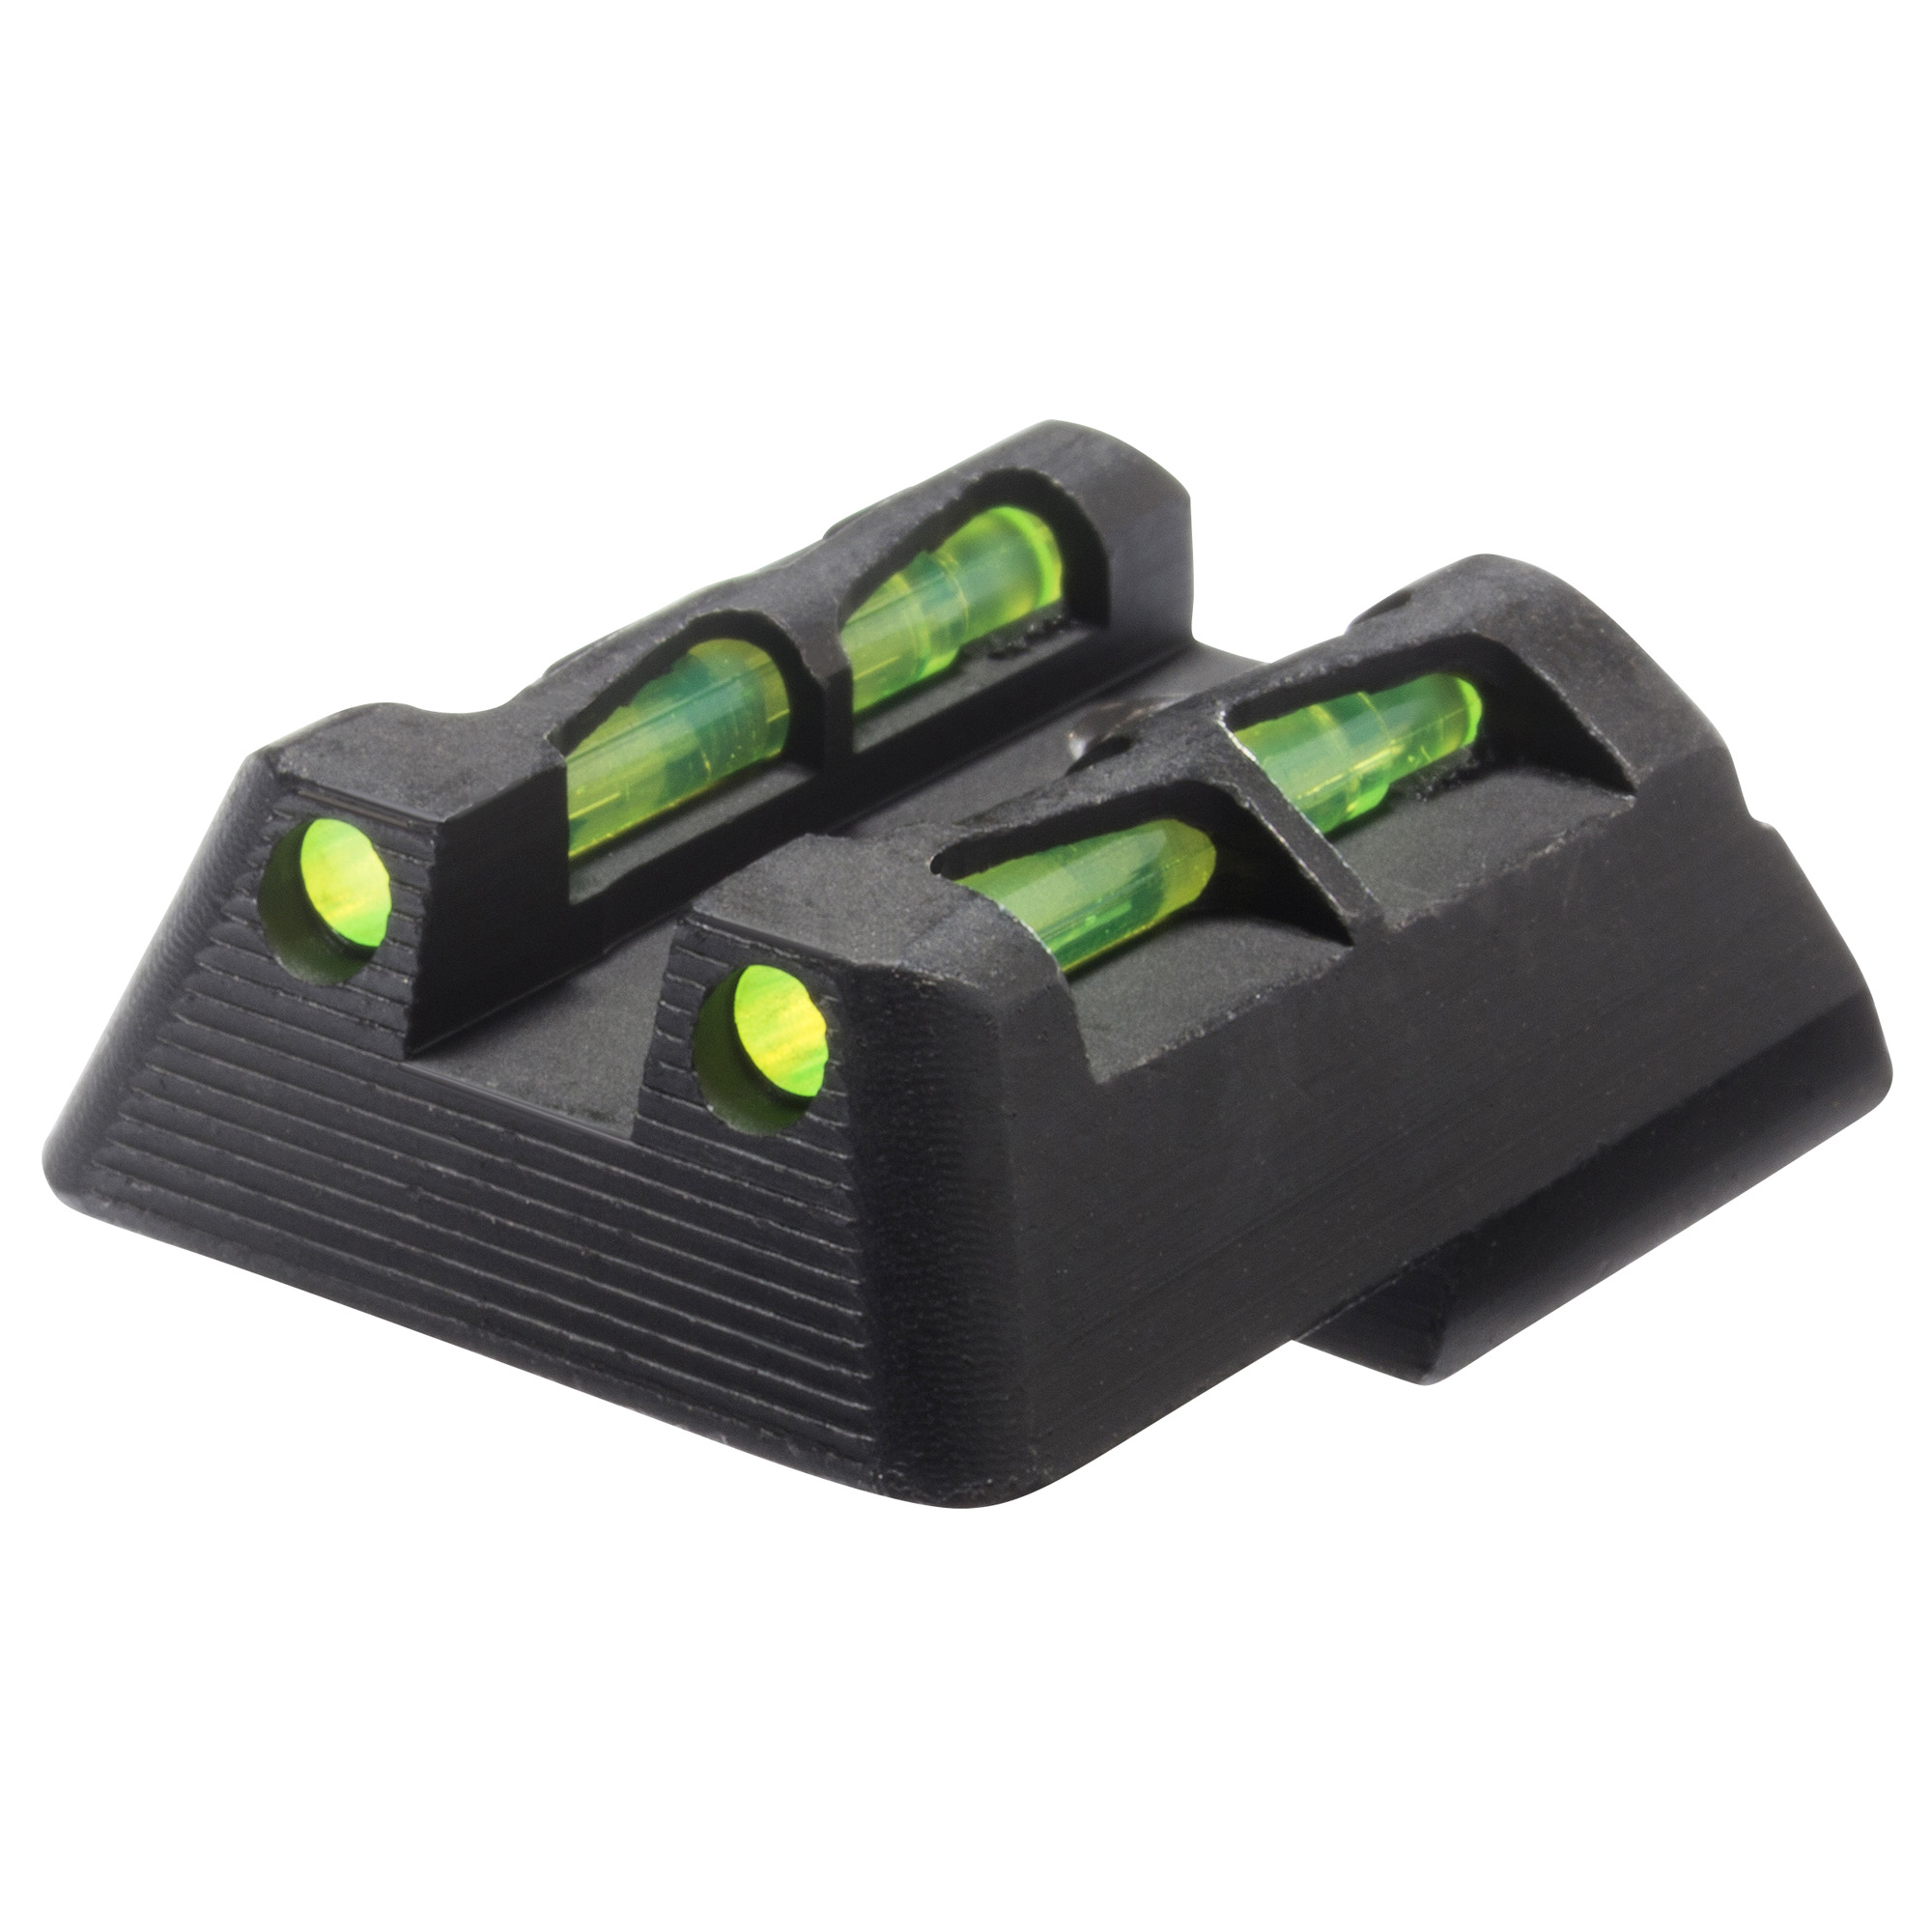 Hiviz Litewave Rear Sight Hk45/p30